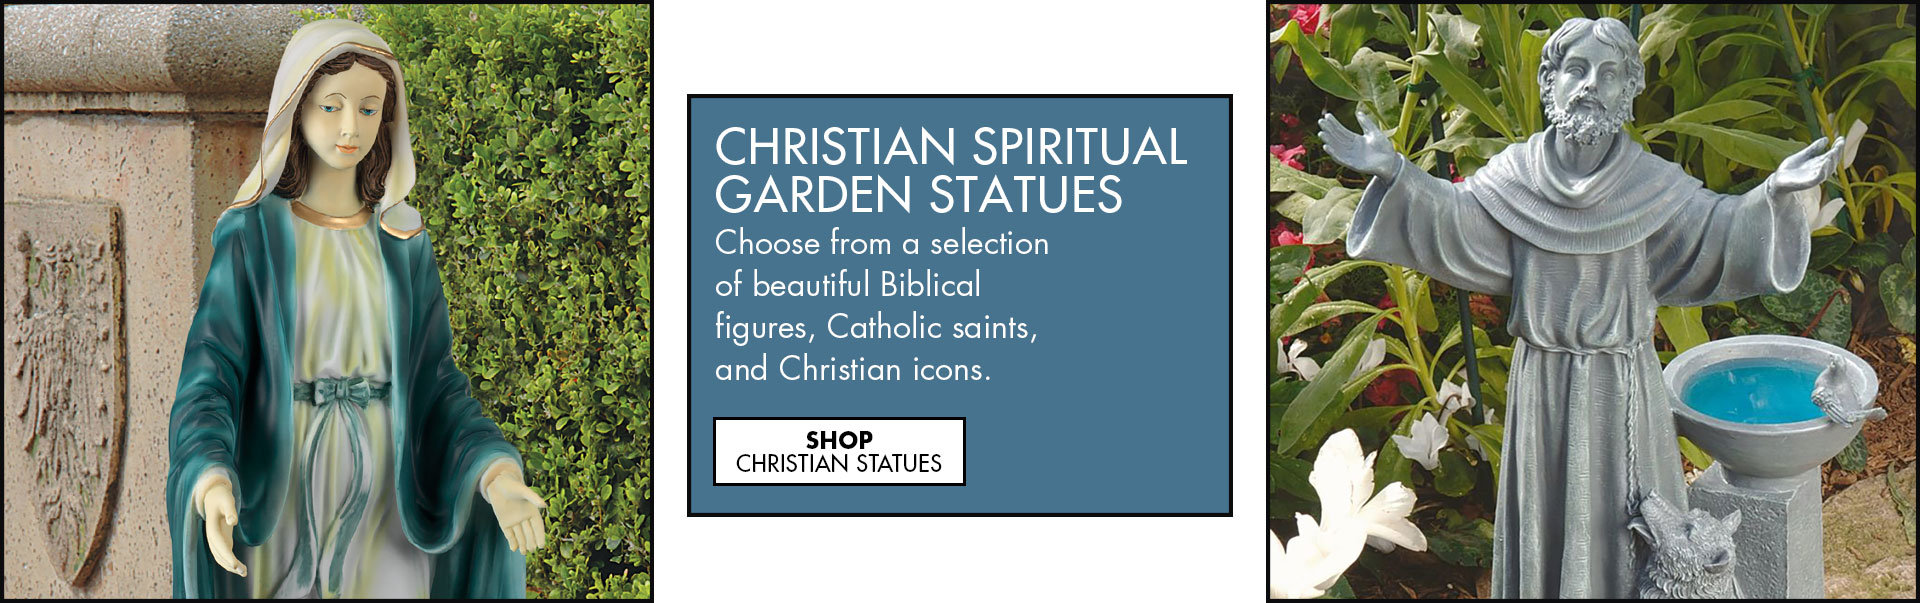 Link to shop Religious Statues for the Garden